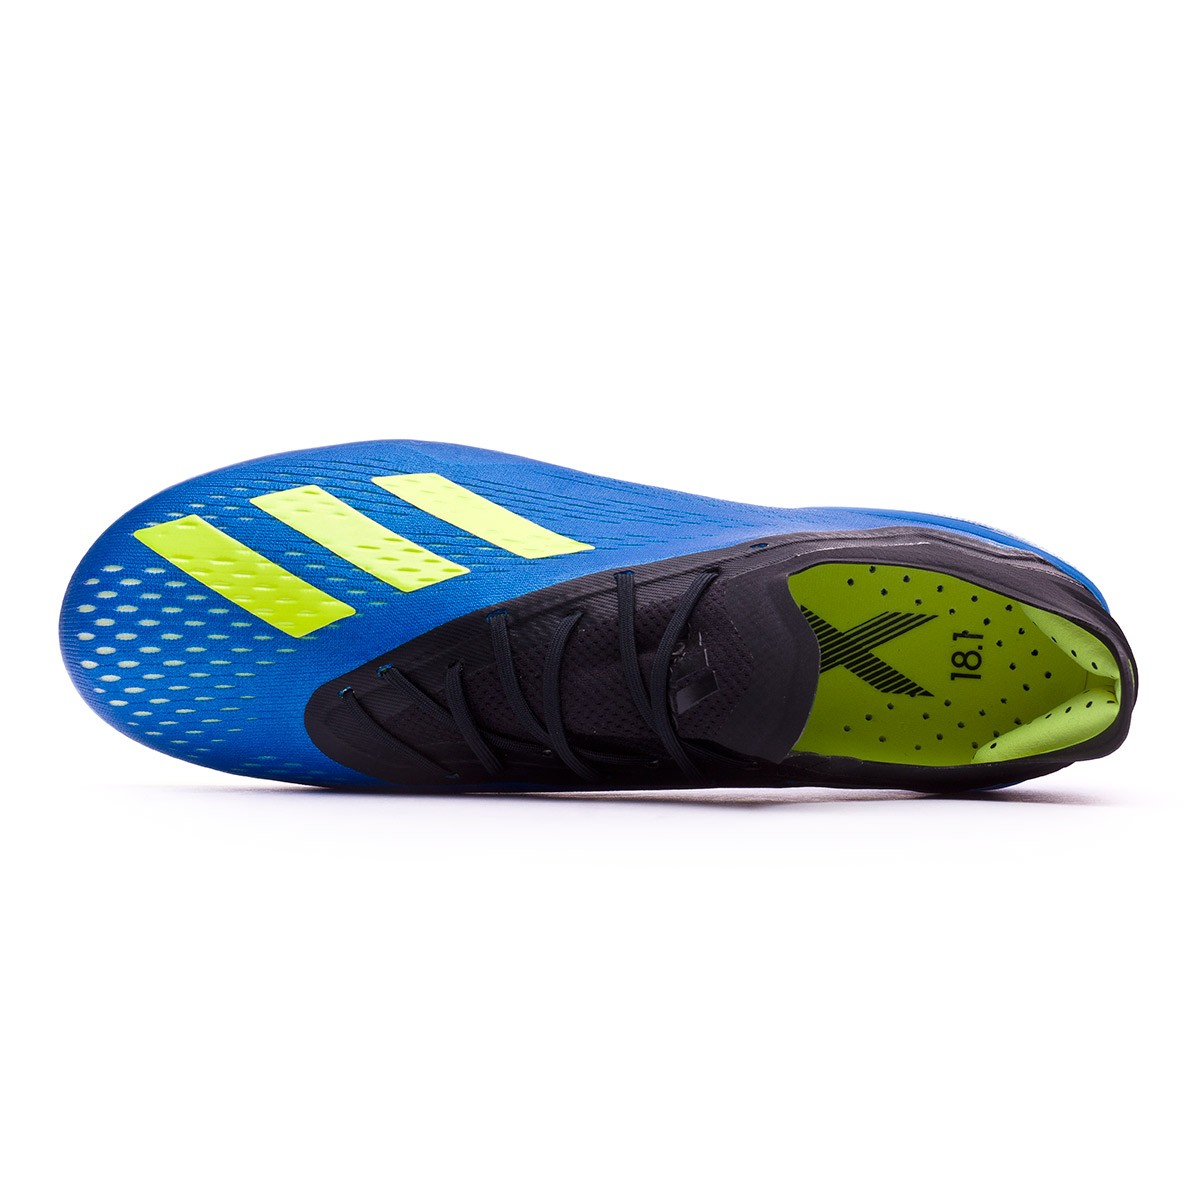 low priced c13de 23308 Football Boots adidas X 18.1 FG Foot blue-Solar yellow-Black - Football  store Fútbol Emotion